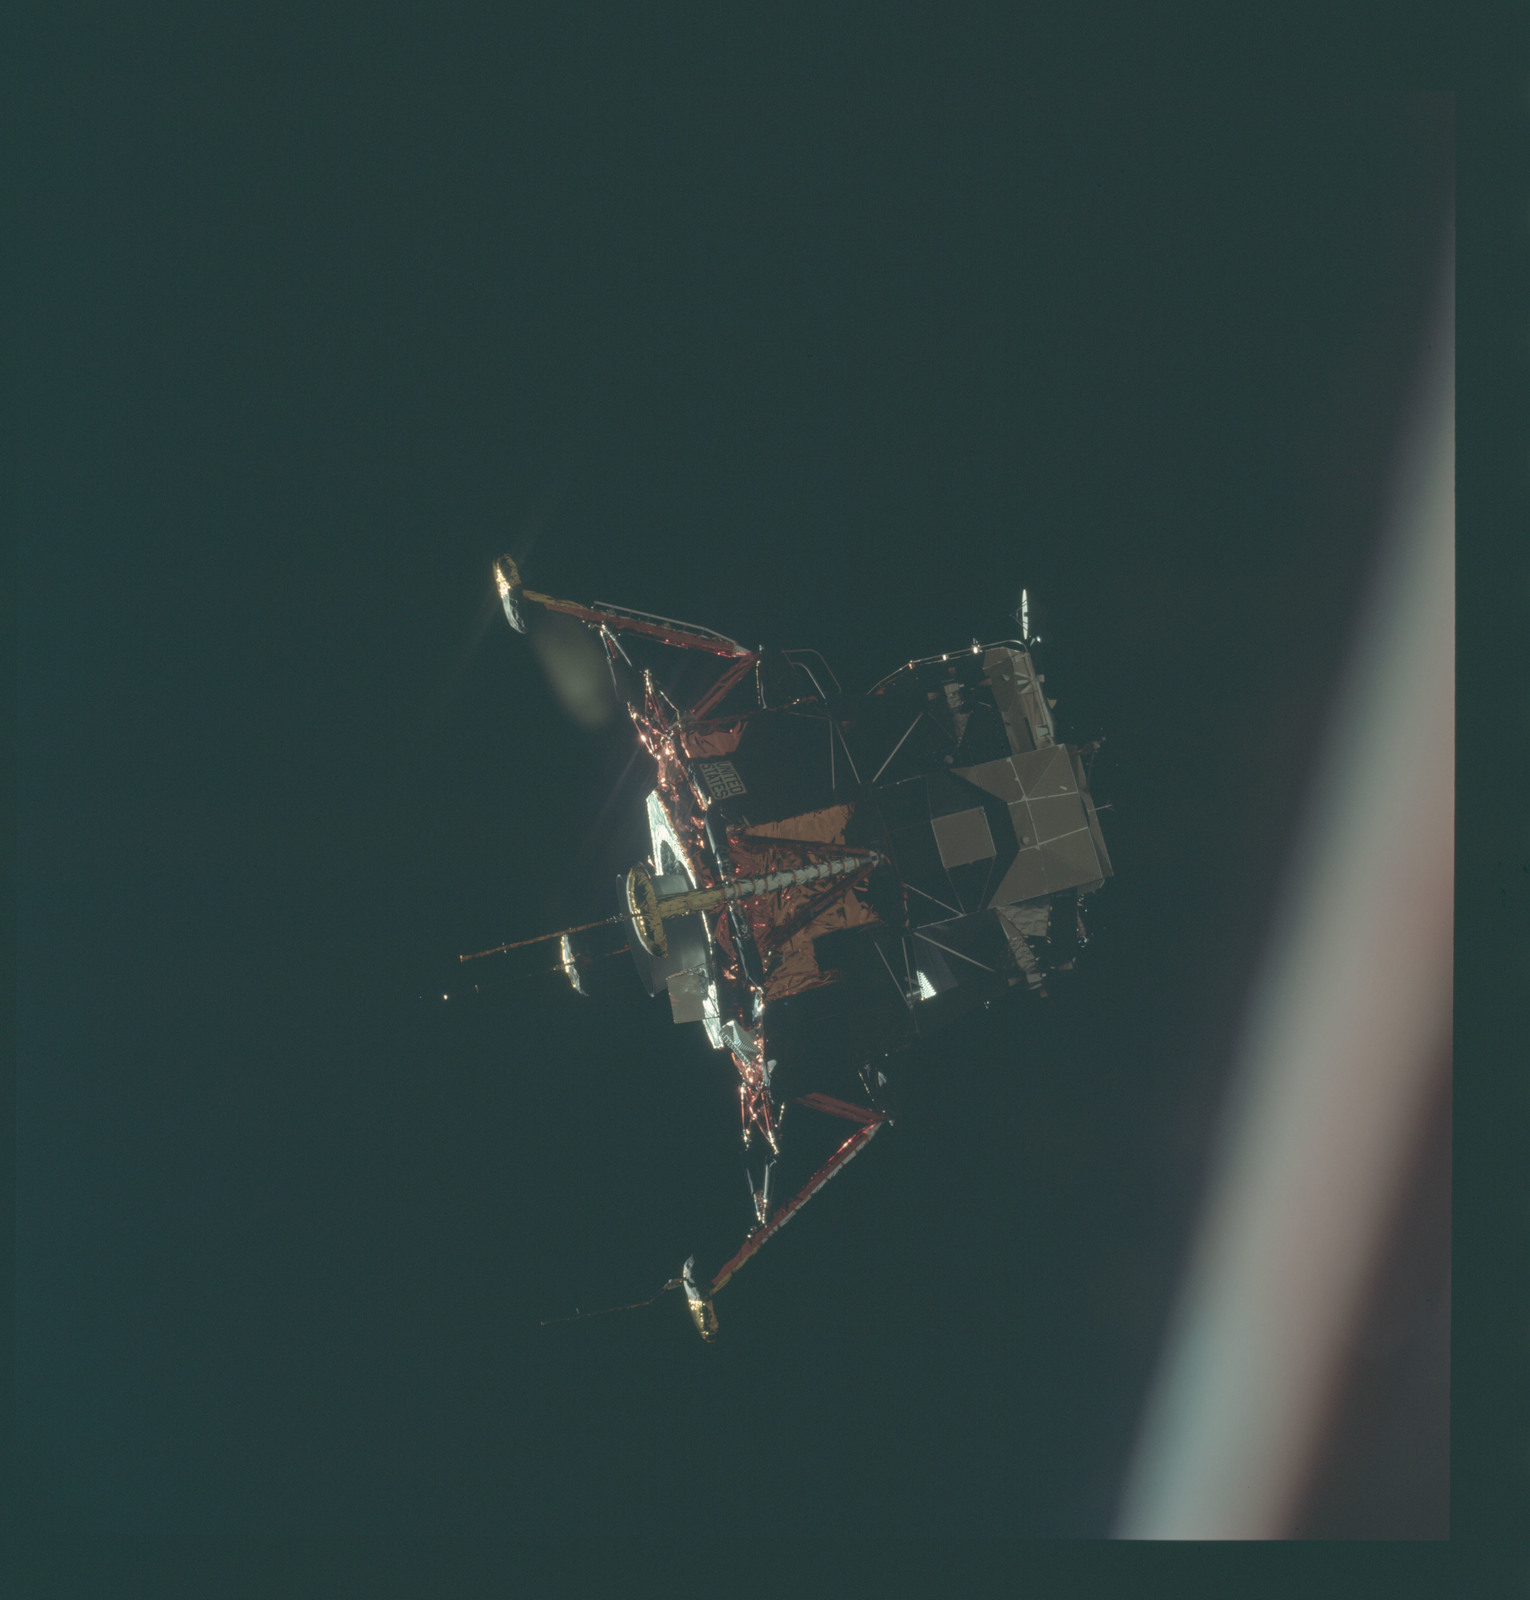 AS11-44-6580 - Apollo 11 - Apollo 11 Mission image - View of Lunar Module separation from the Command Module